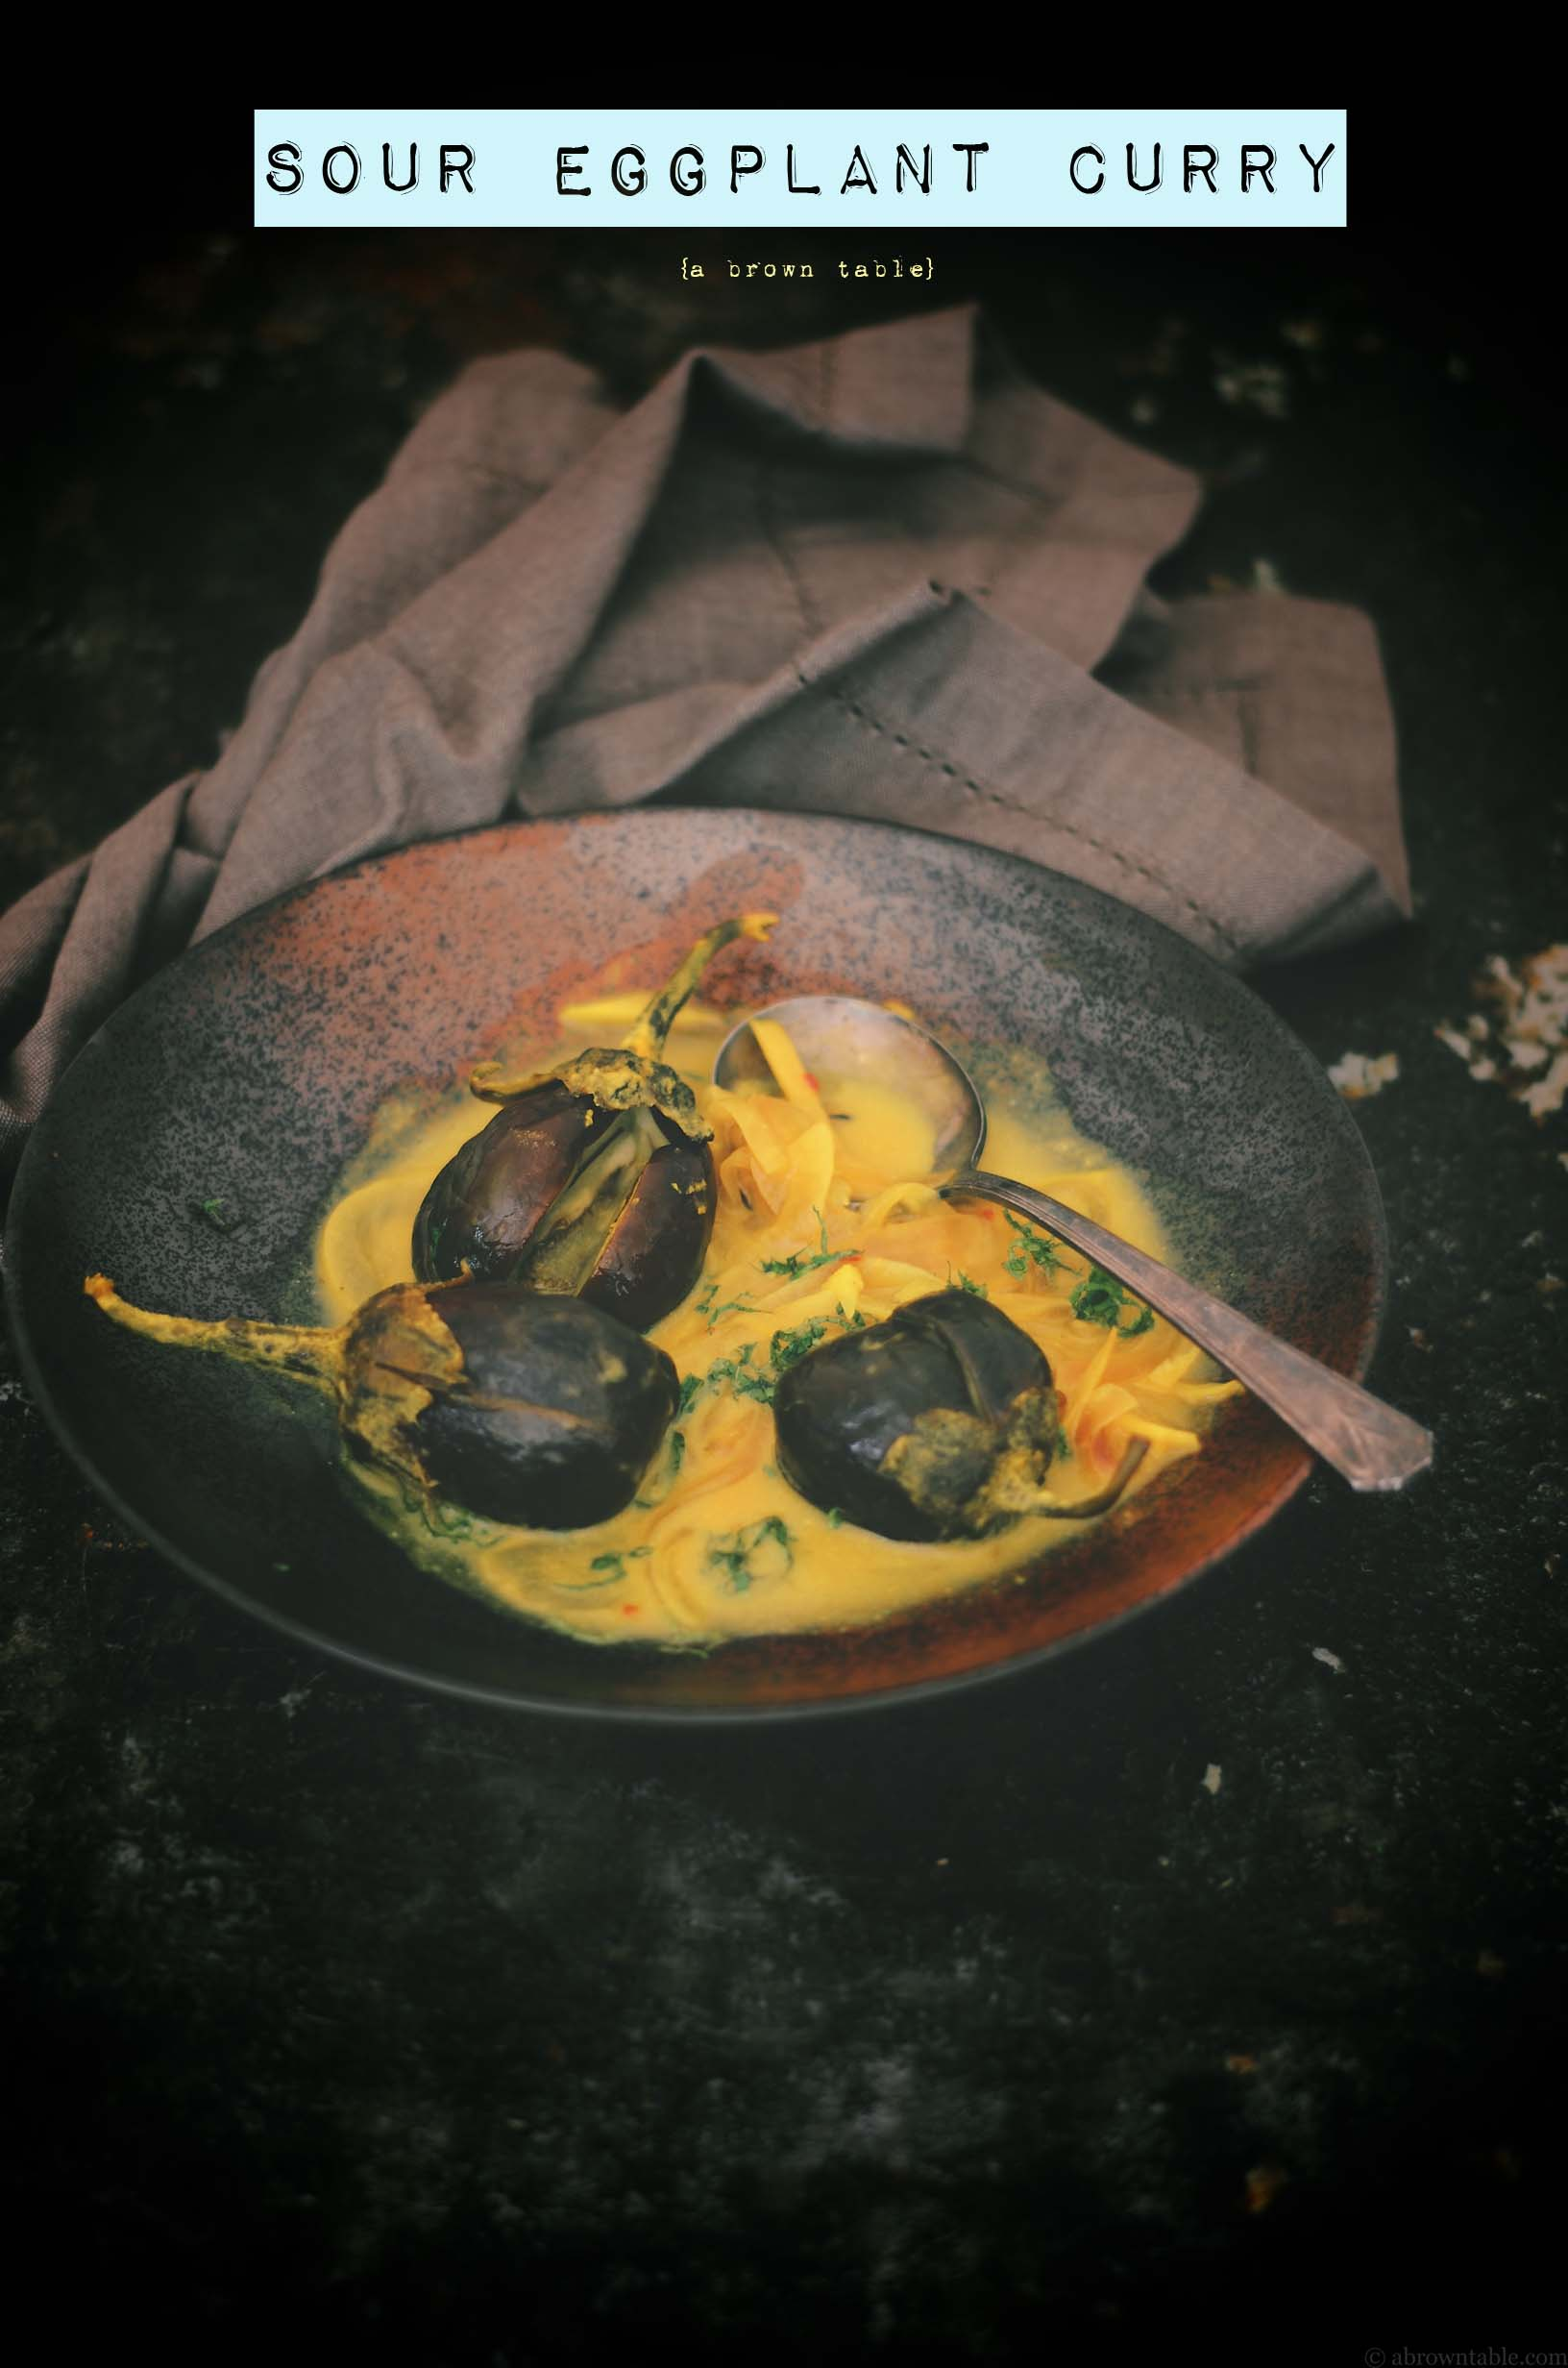 sour eggplant curry